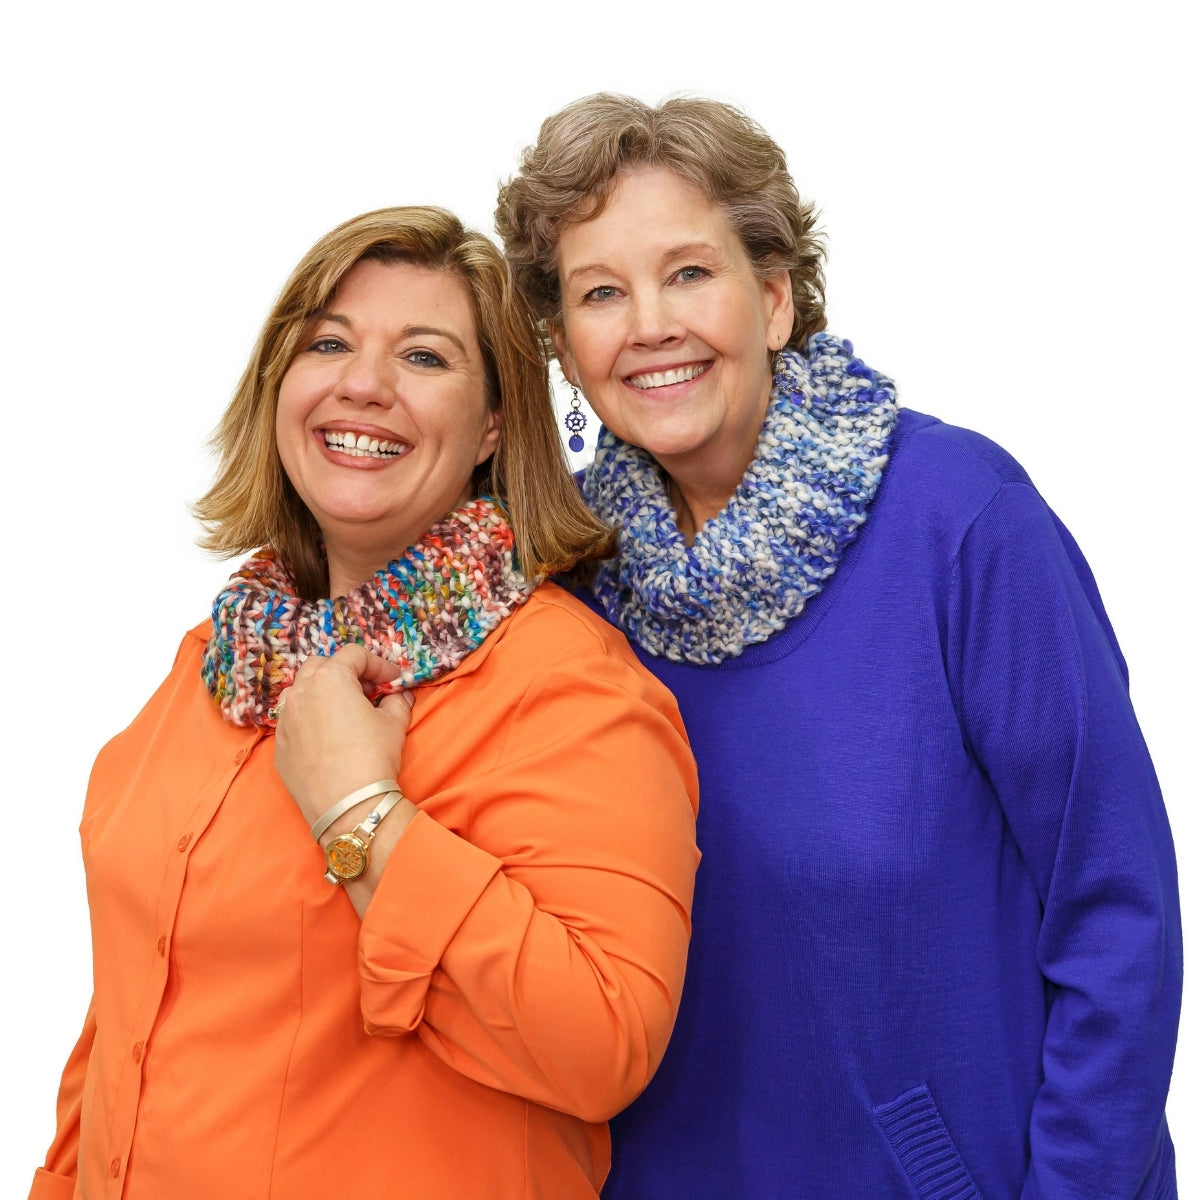 Jenny Fish and Jenny Doan model the One Big Happy Yarn Co Cowl in colors Park (multi) and Coast (blue multi).